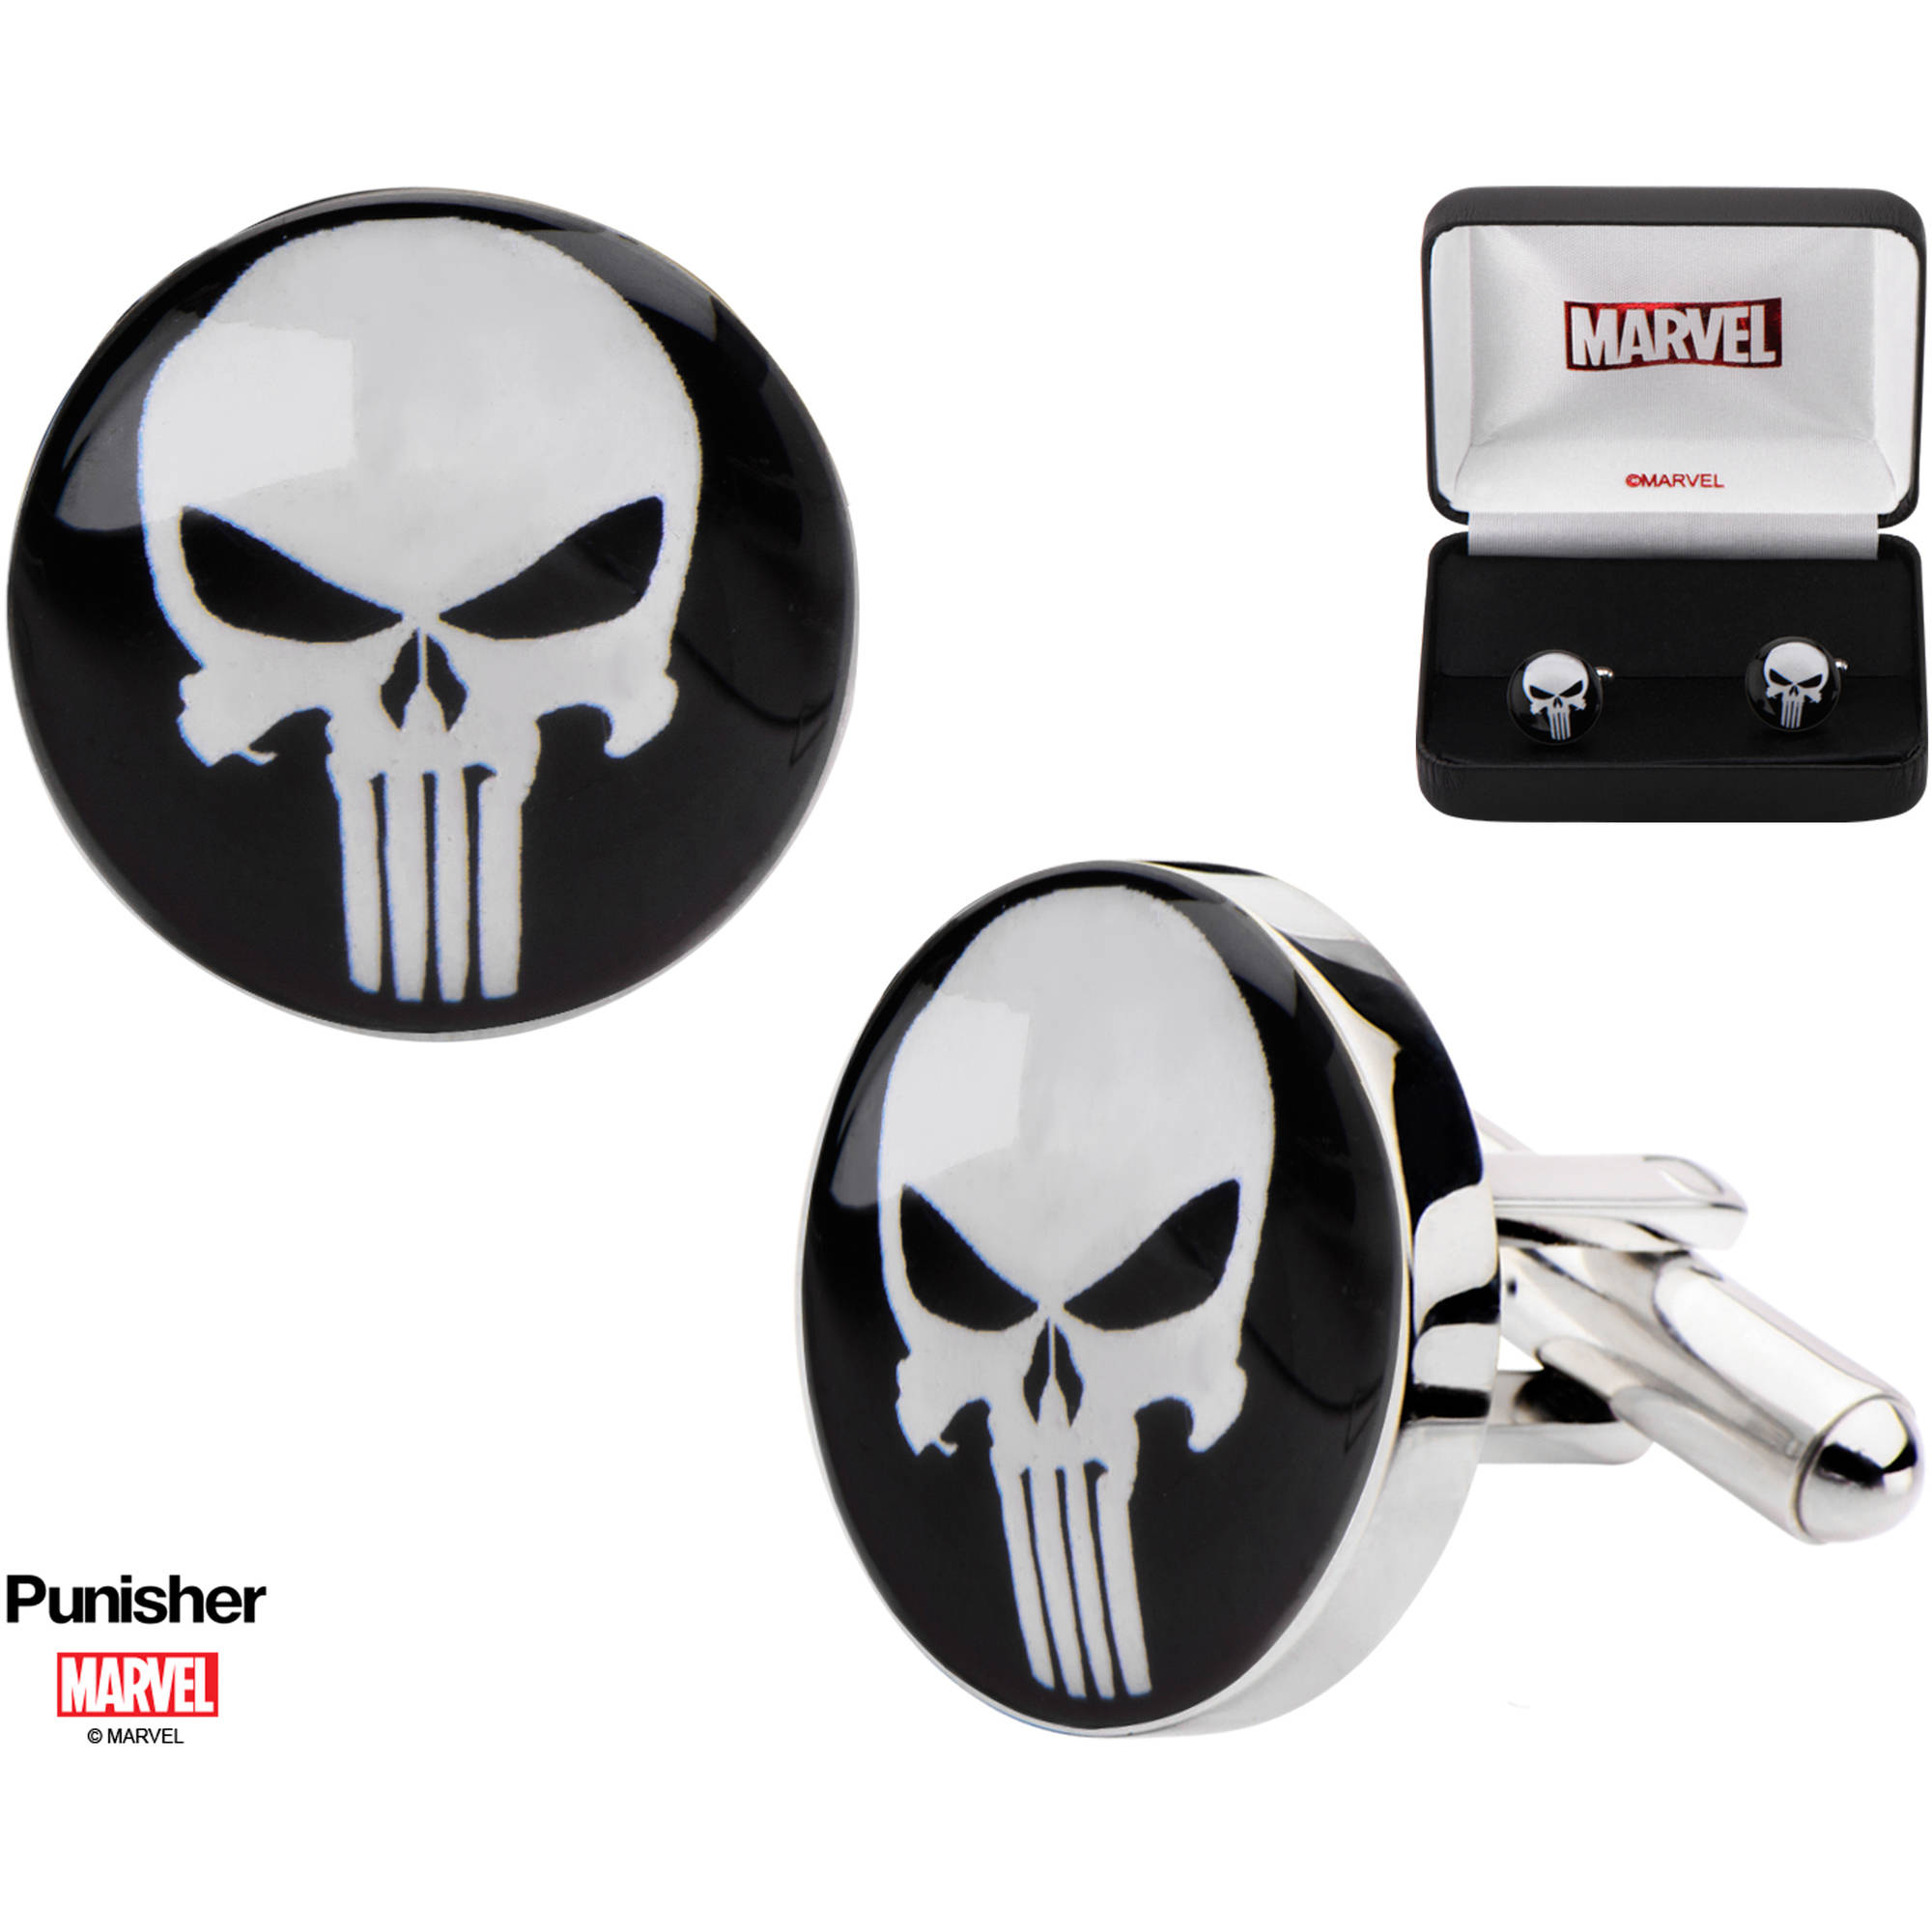 Marvel Men's Stainless Steel Punisher Face Cufflinks